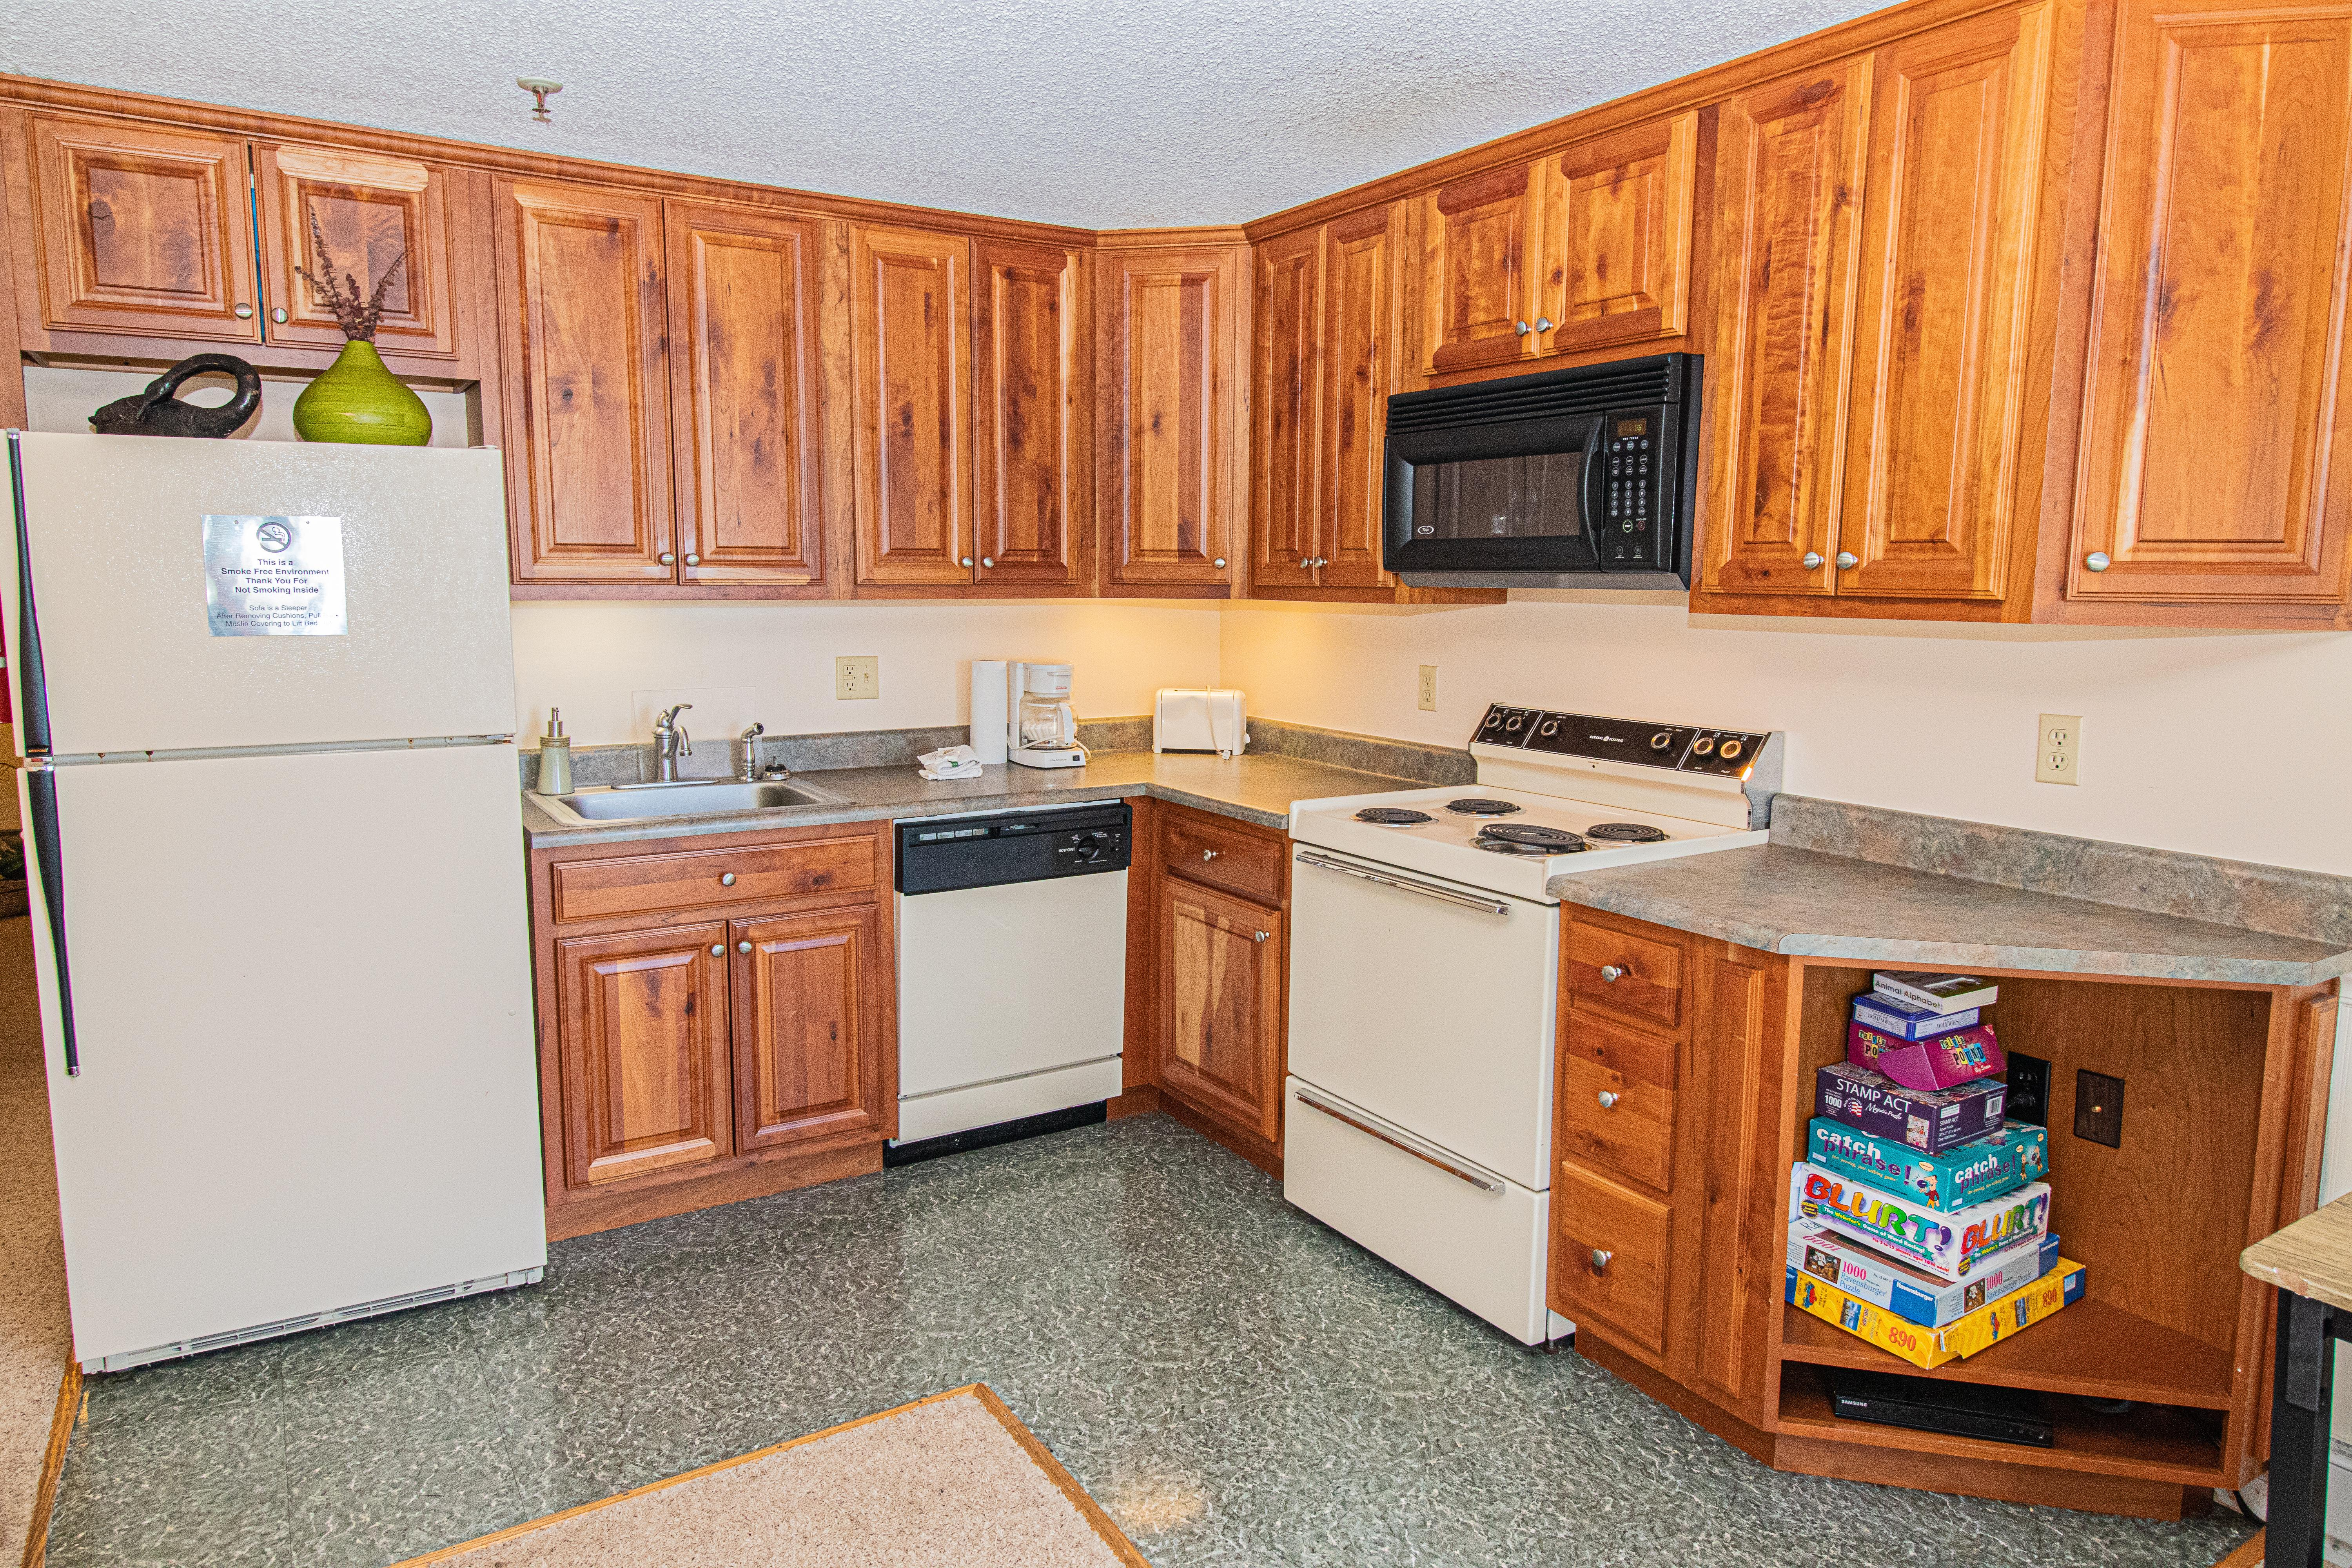 Fully-equipped kitchen with full-sized appliances. Everything you need to prepare your own meals!